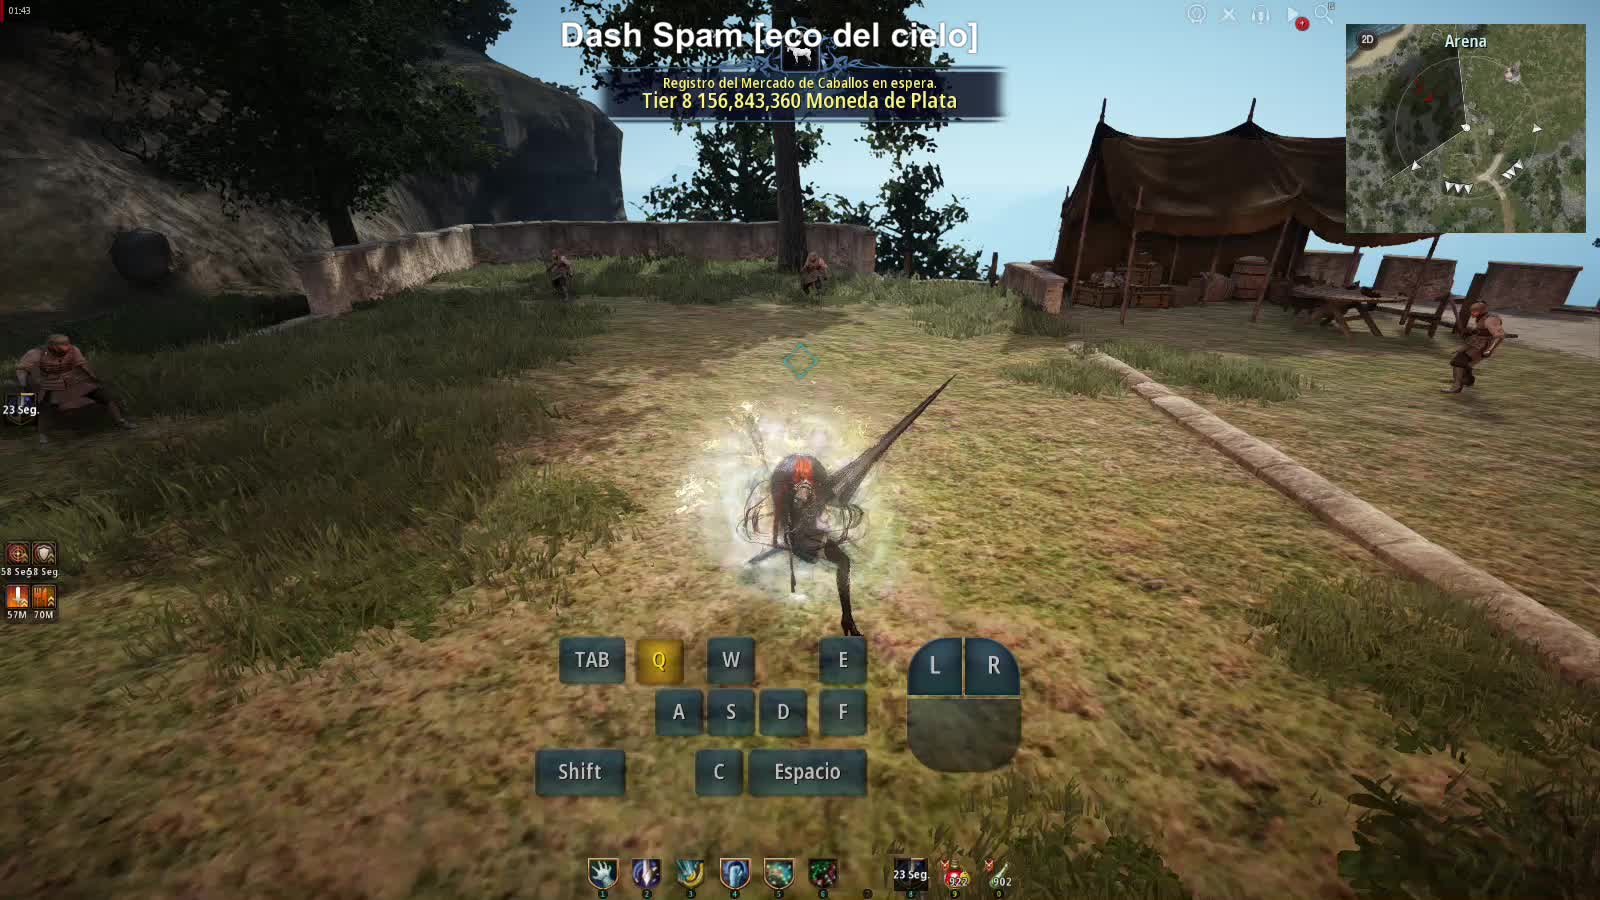 Black Desert Valkyrie Gifs Search | Search & Share on Homdor